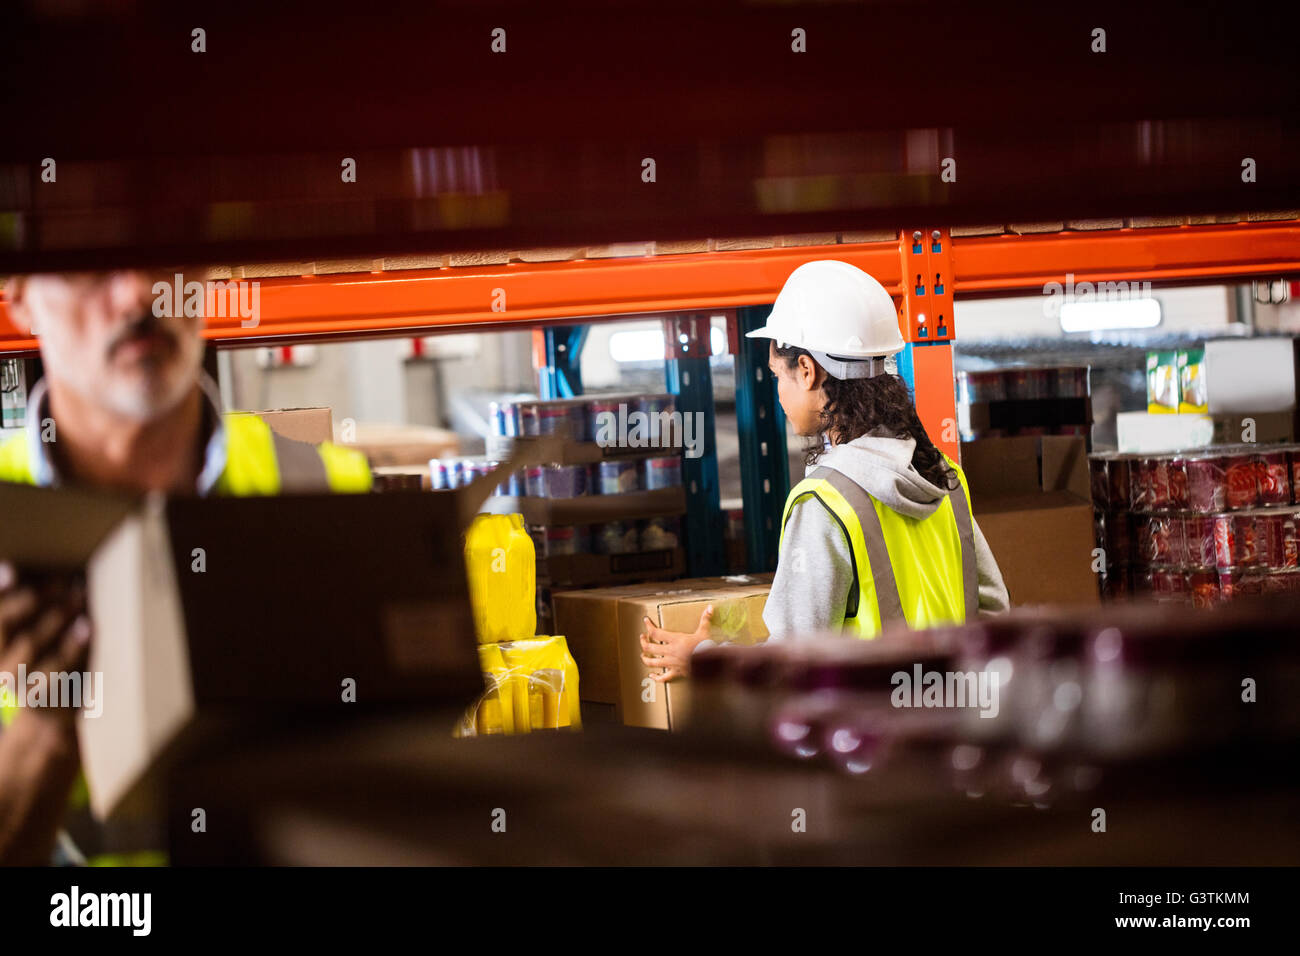 Workers warehouse tidying the shelves - Stock Image